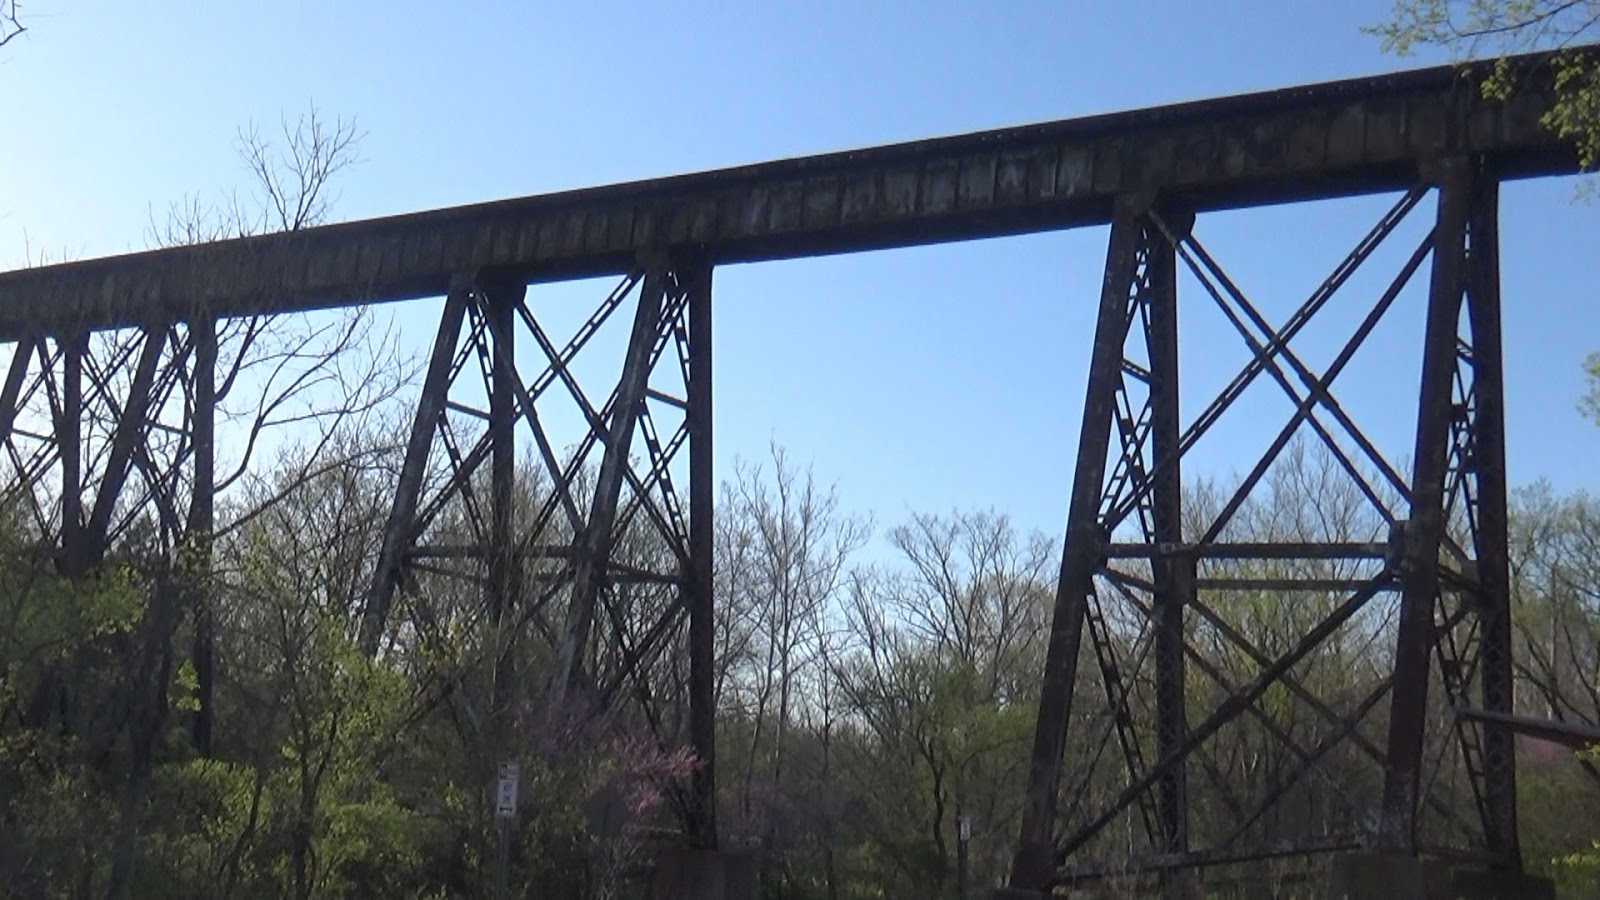 Pope lick trestle, huge porn video gallery